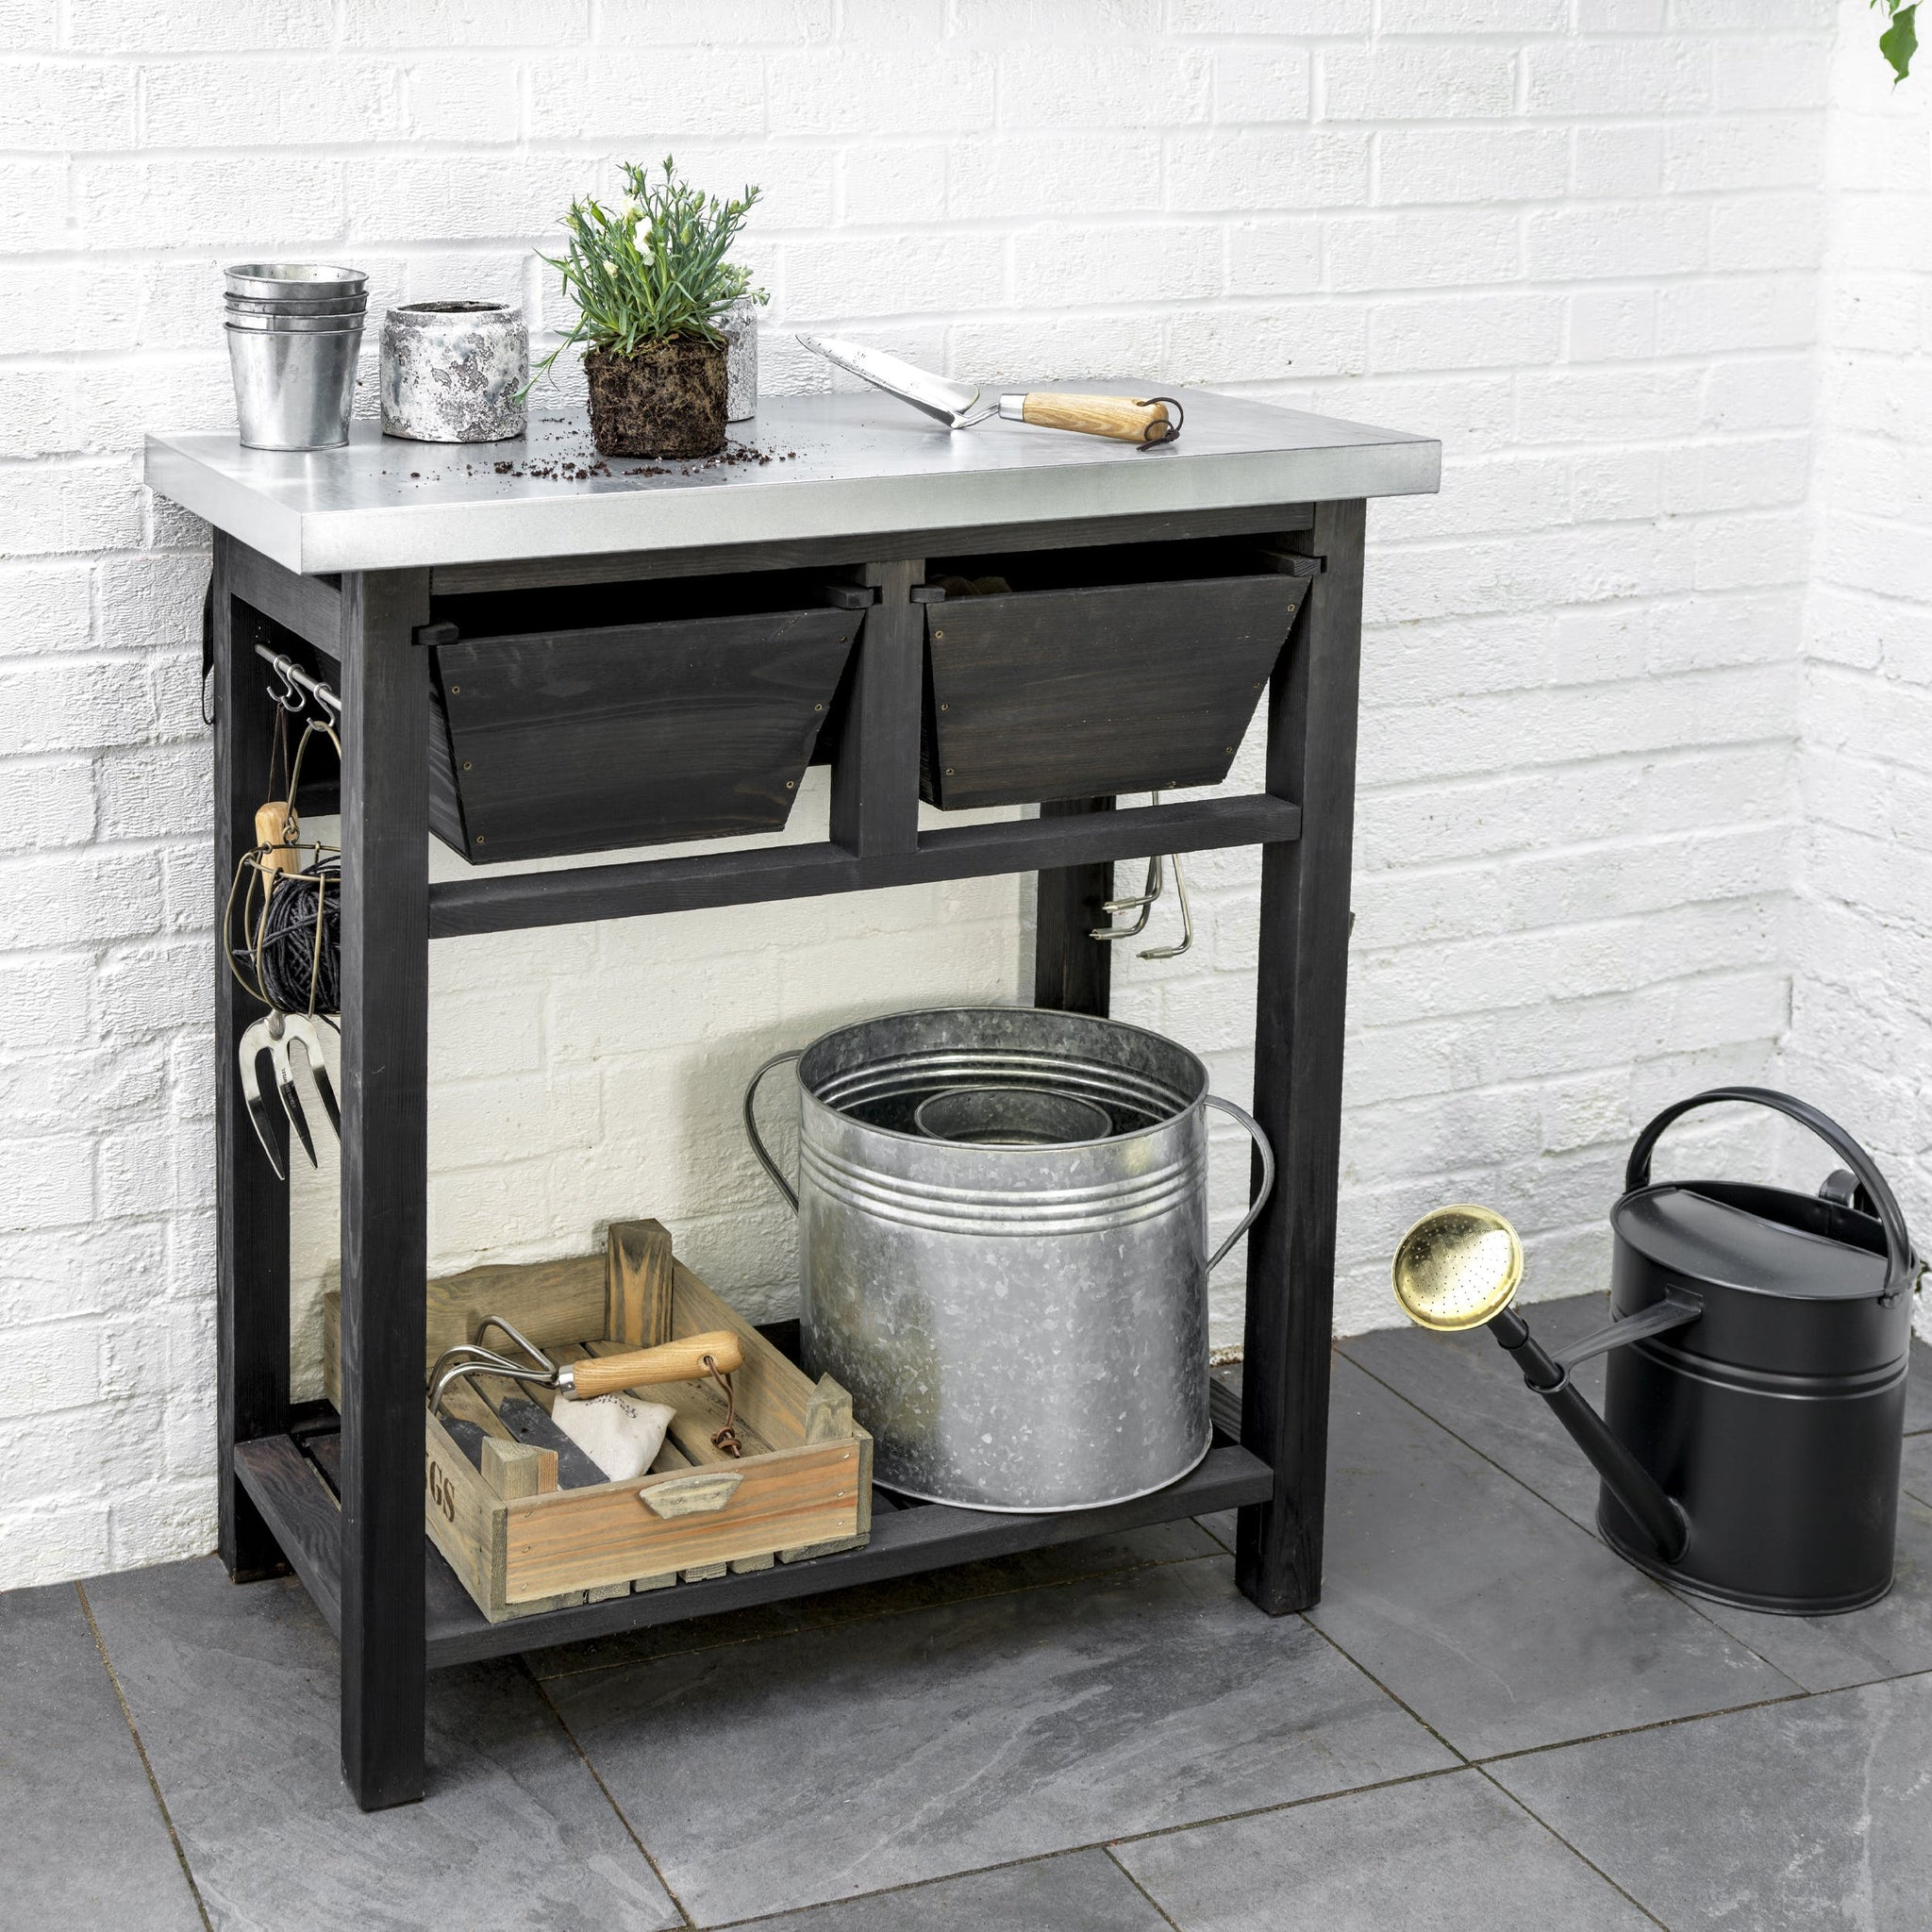 Bromstead Potting Bench - Ezzo